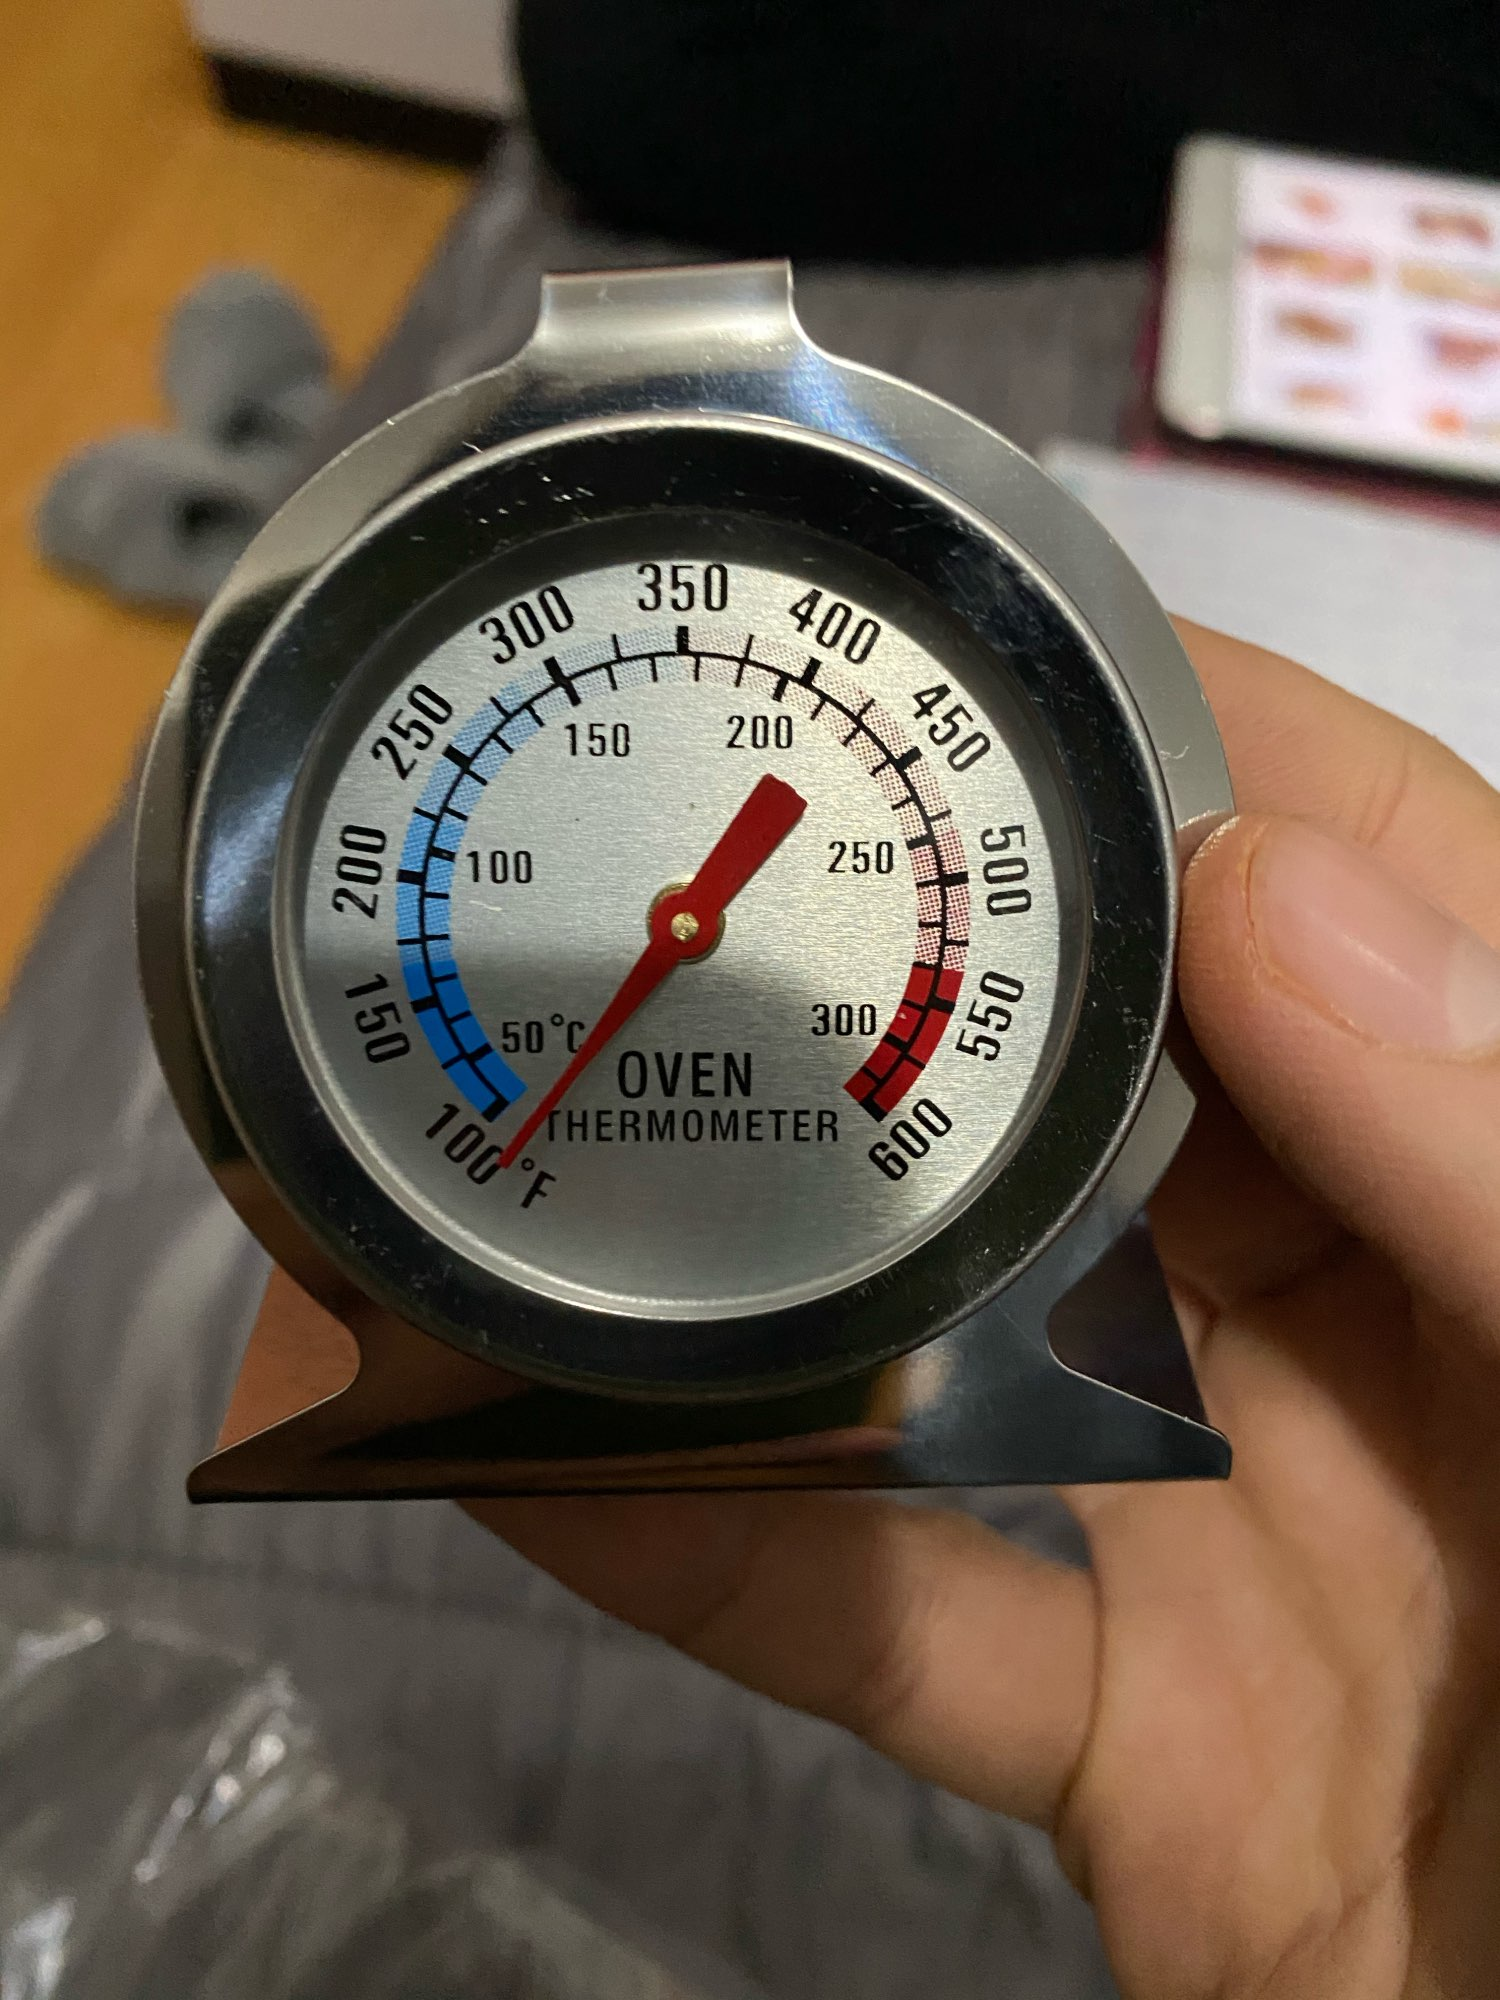 Stainless Steel Oven Kitchen Thermometer